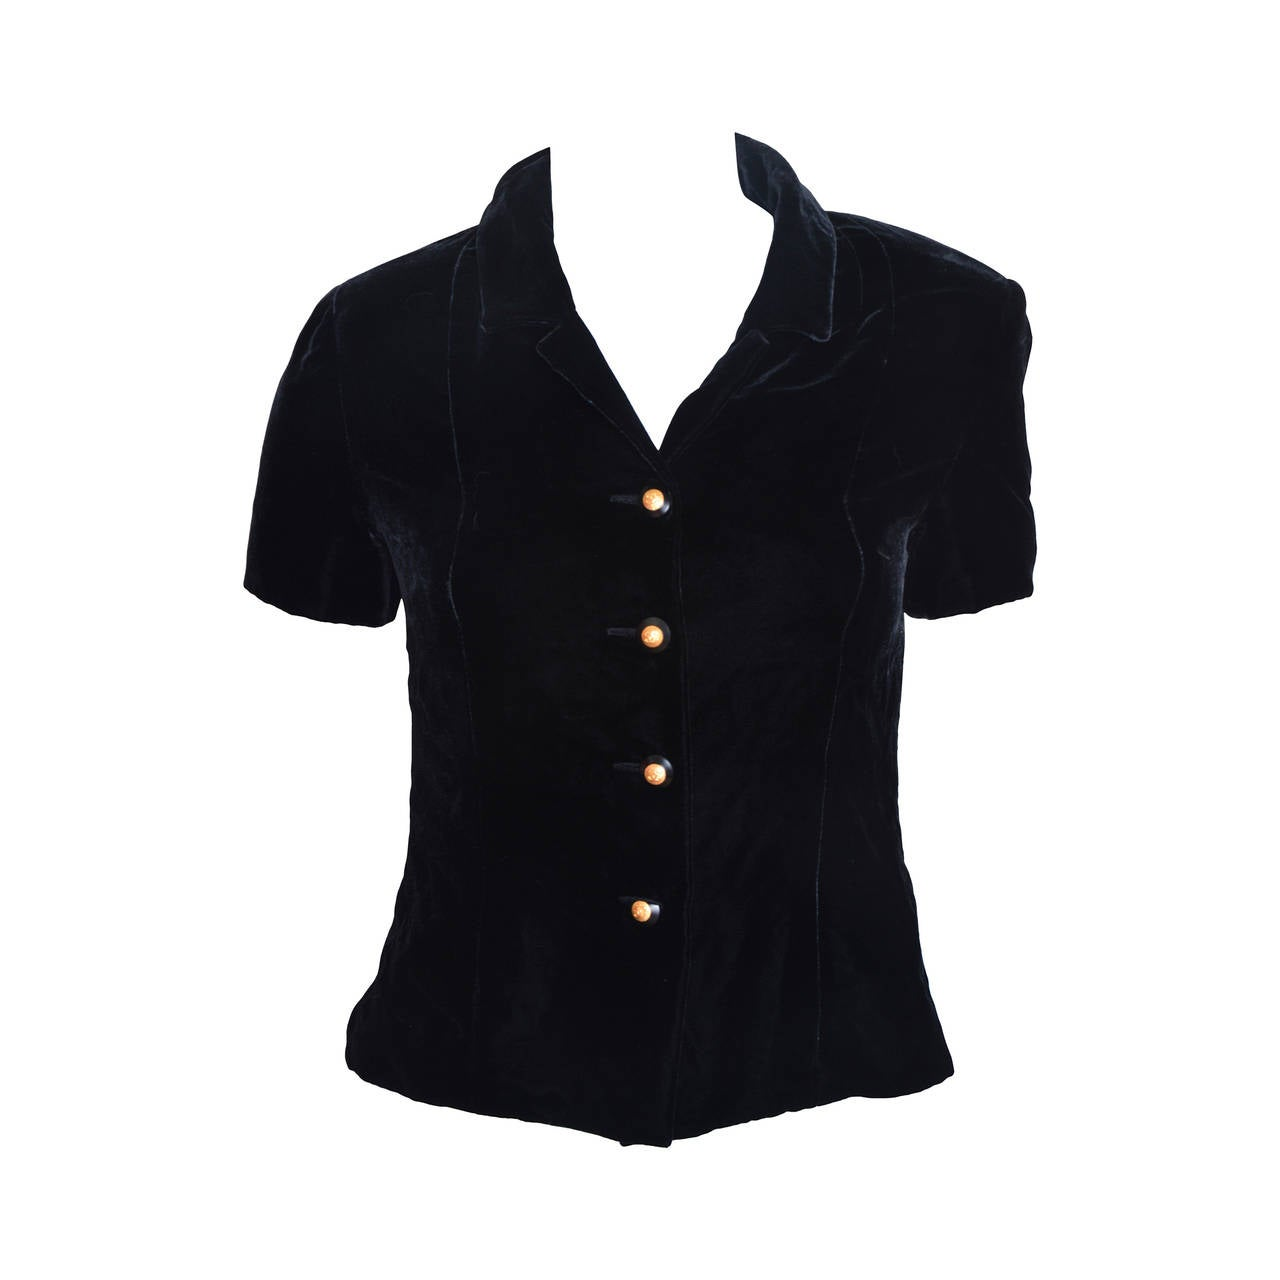 Chanel Boutique Black Velvet Formal Top 1